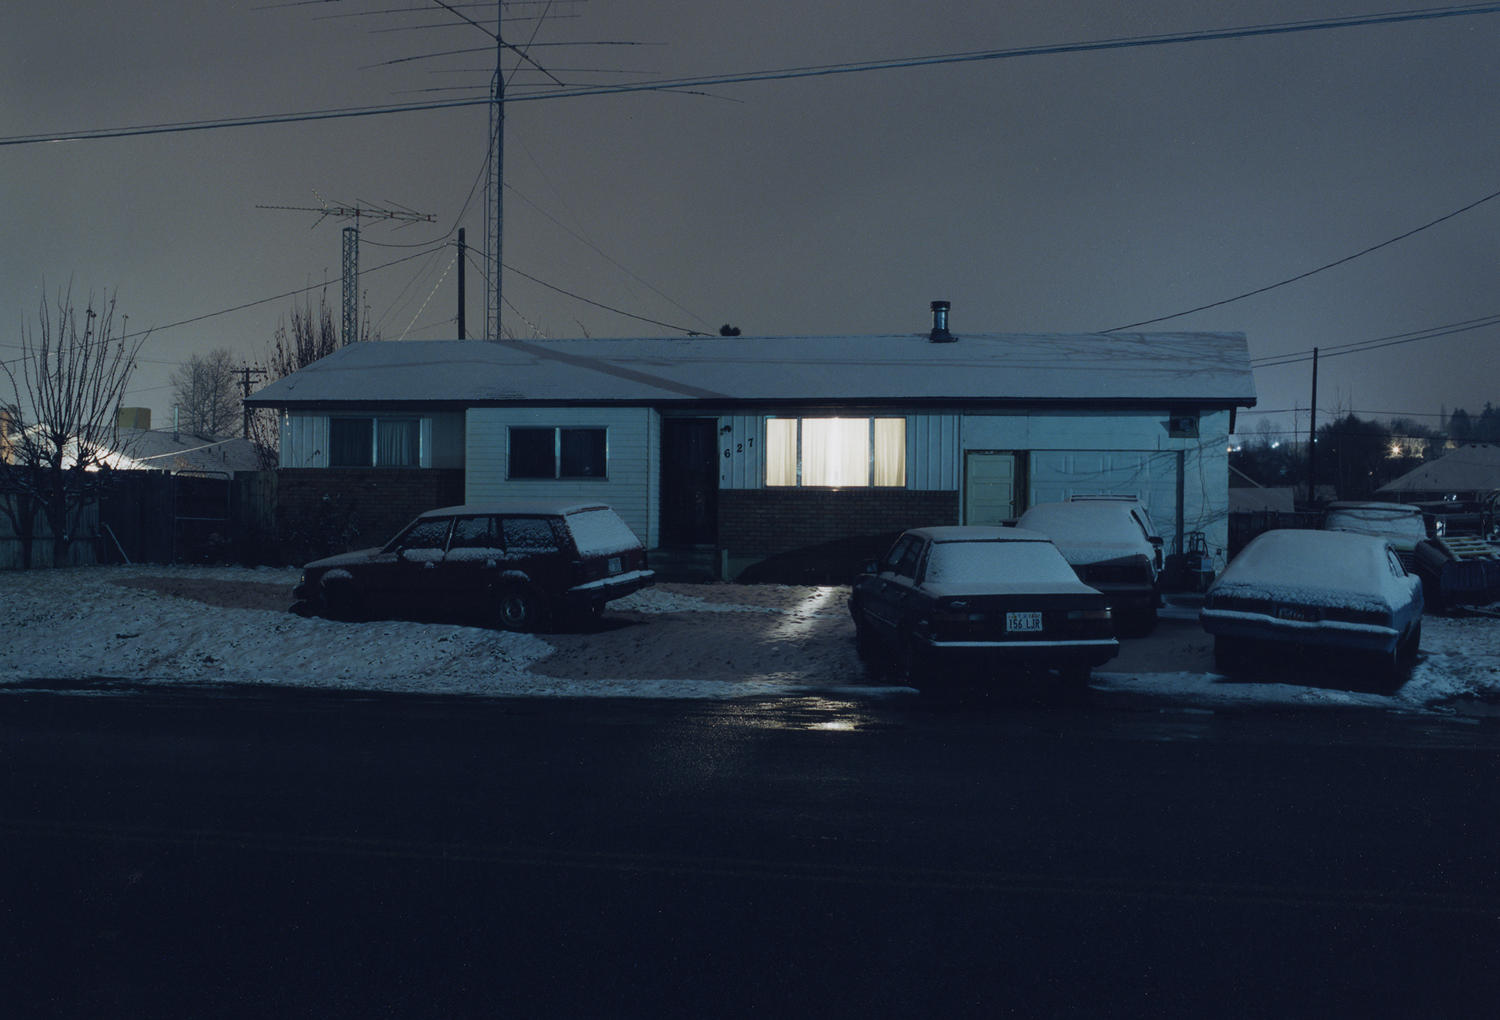 Todd Hido Fragmented Narratives 2011 American Suburb X